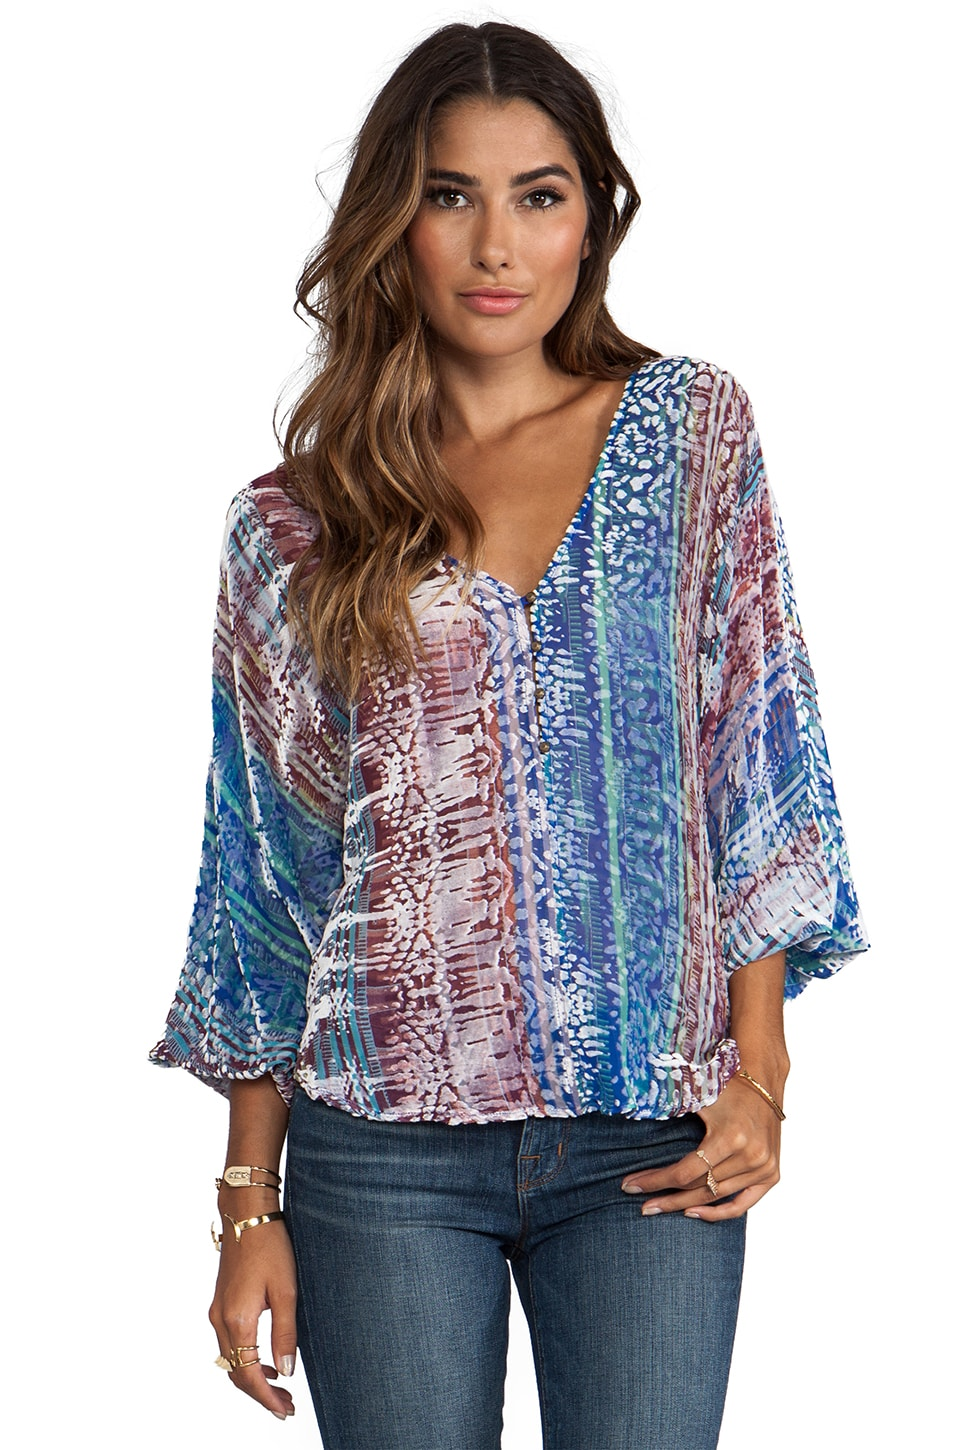 Twelfth Street By Cynthia Vincent Chelsea Morning Dolman Blouse in Ikat Stripe